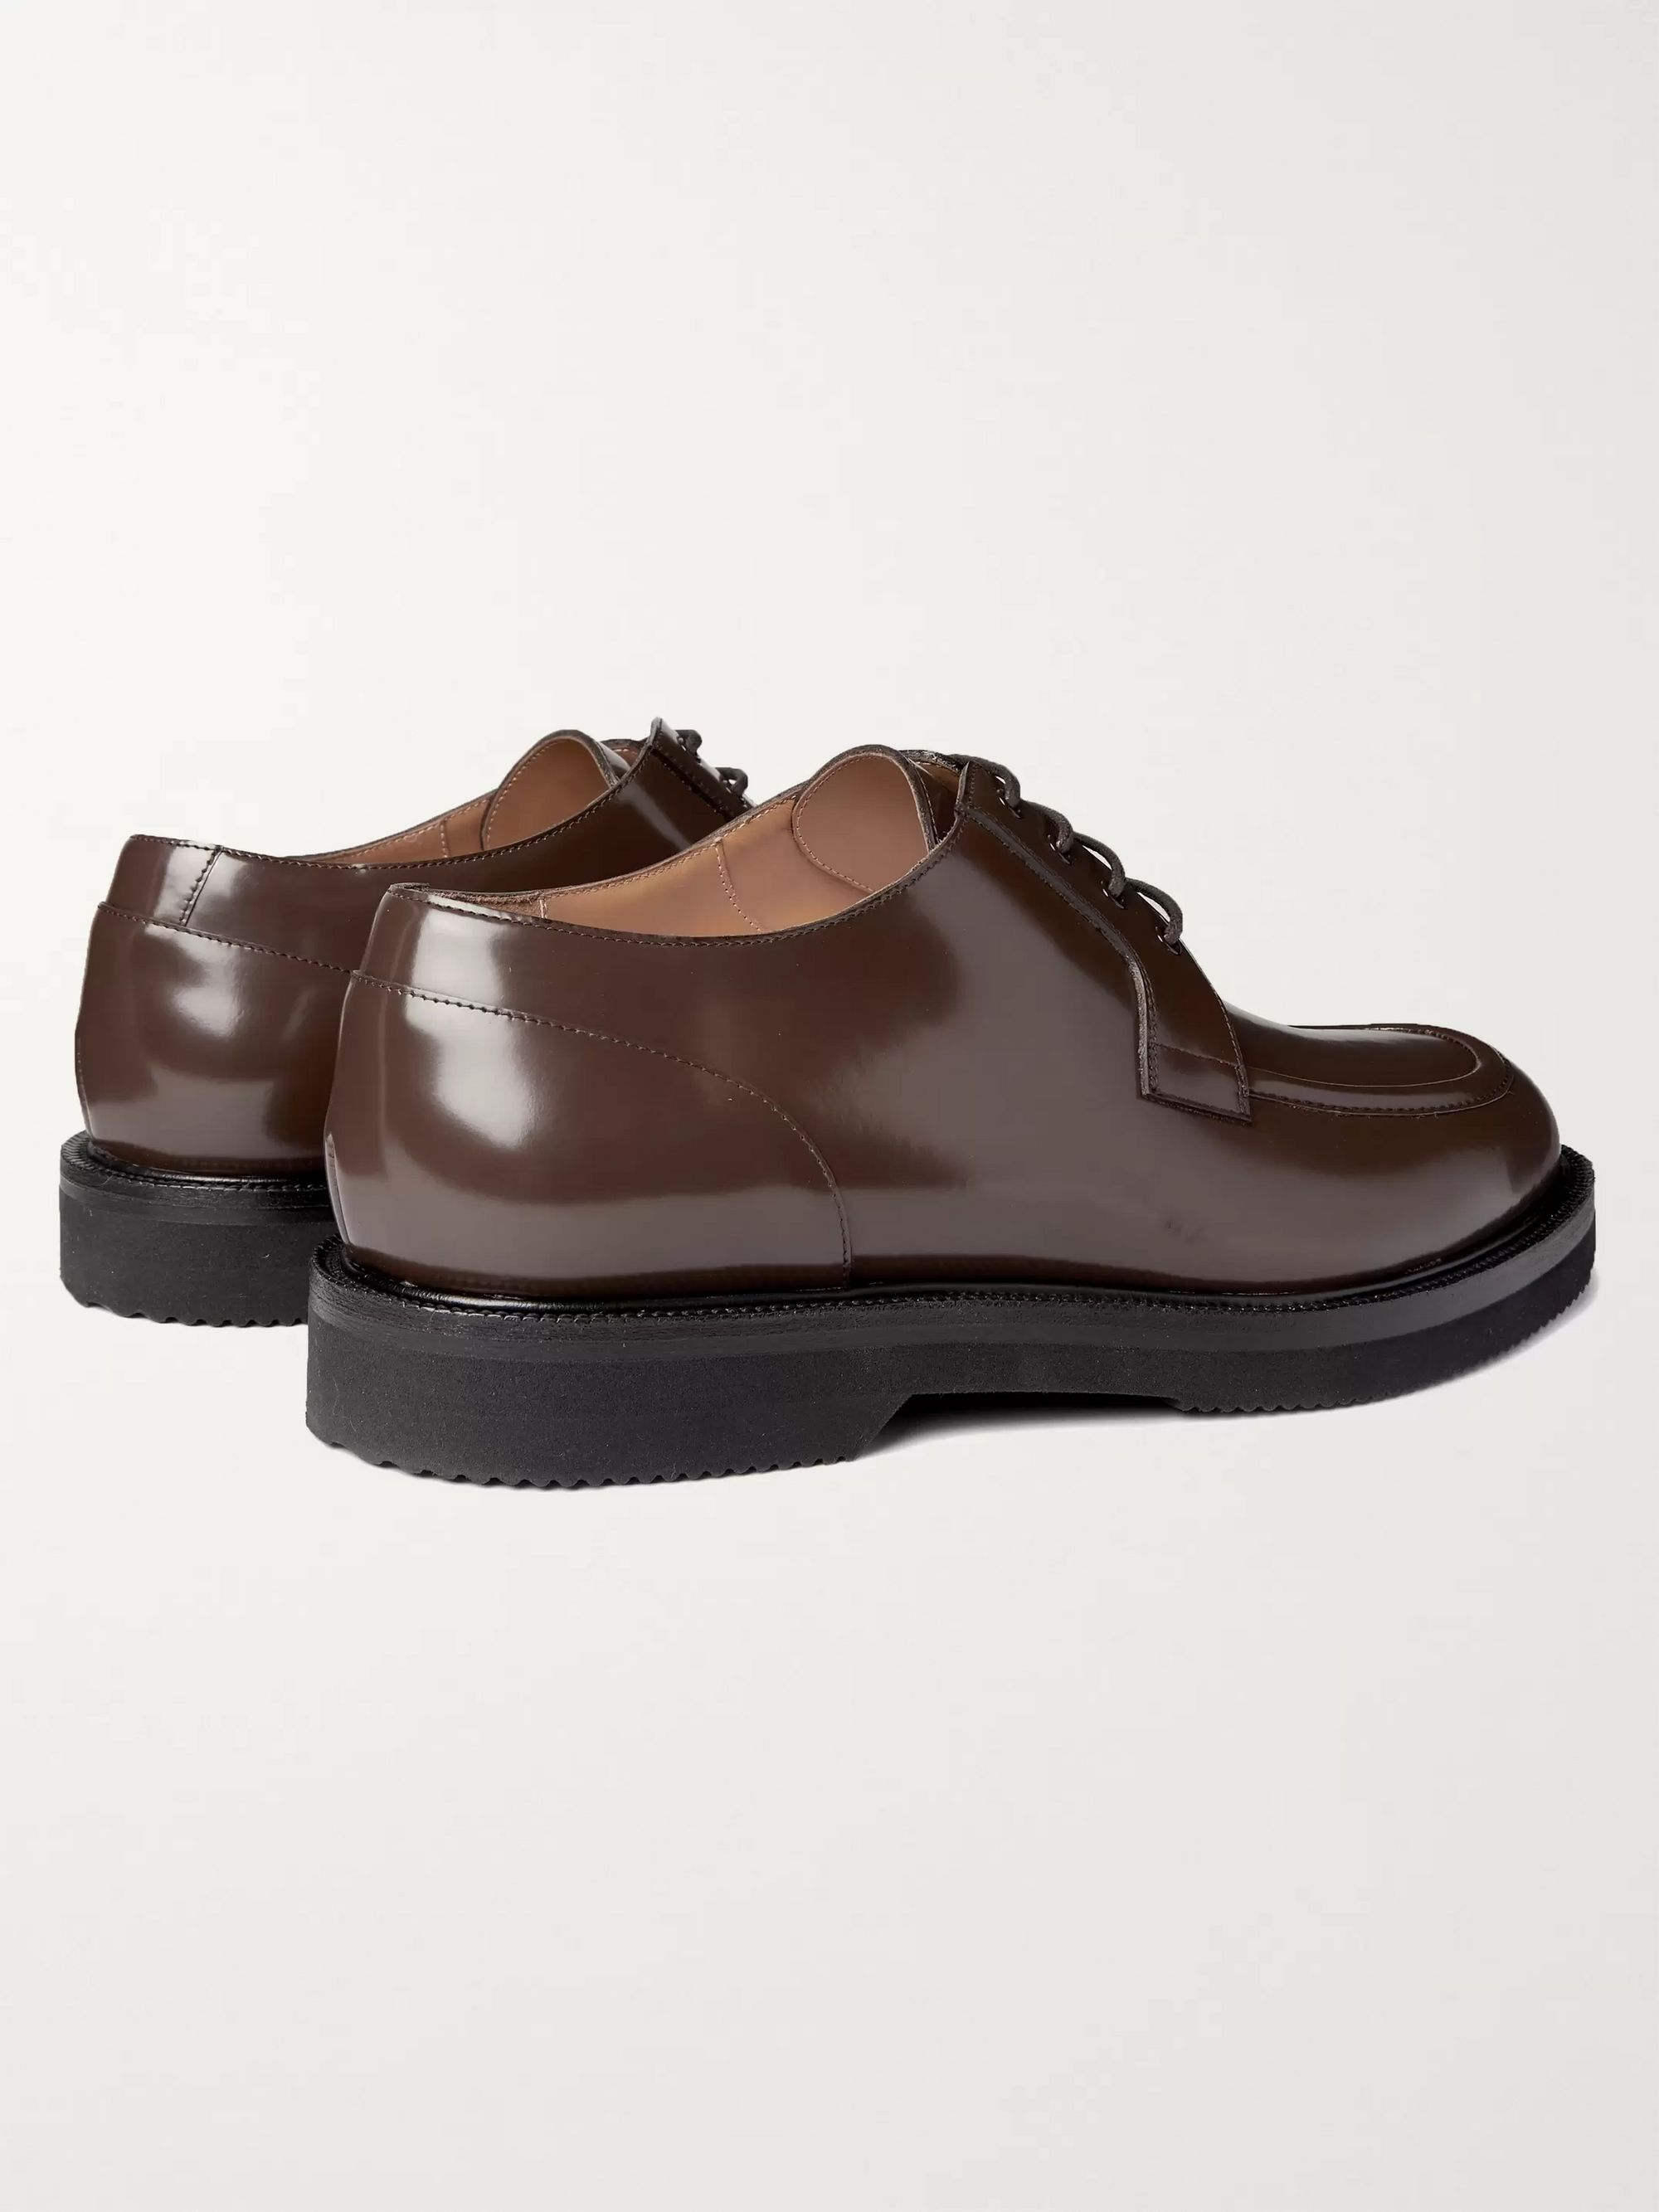 Dries Van Noten Polished-Leather Derby Shoes